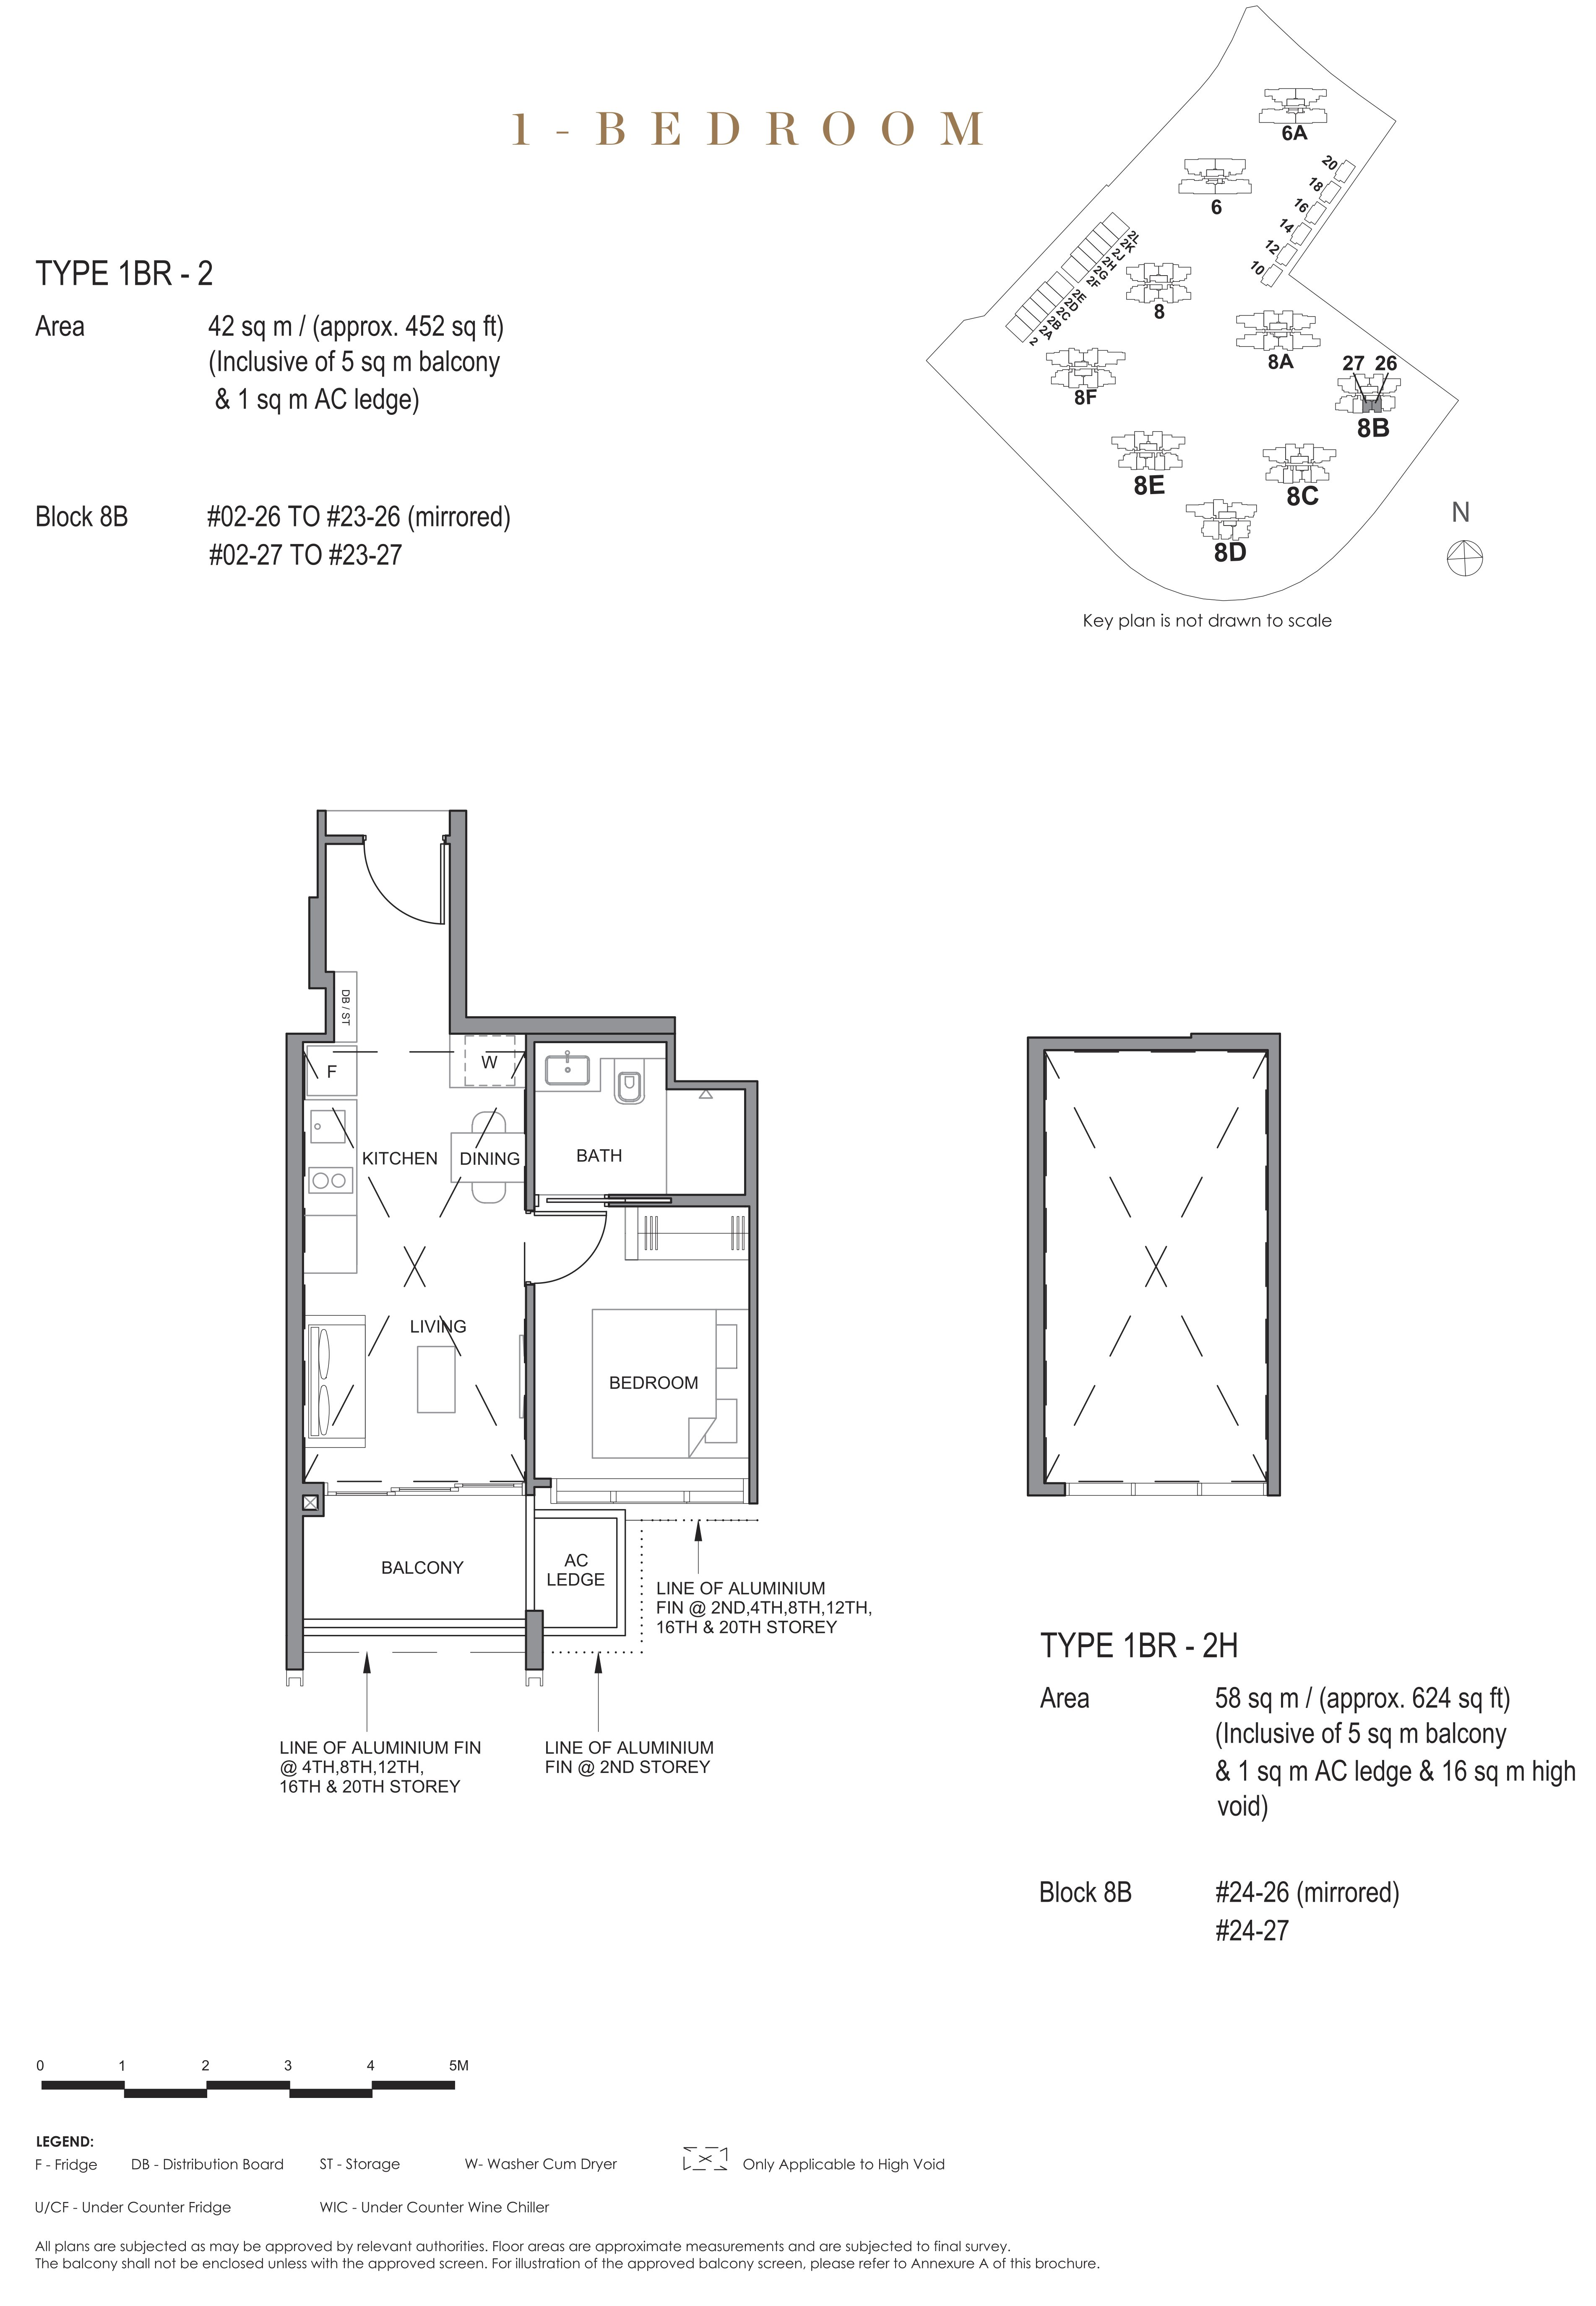 Parc Clematis 锦泰门第 contemporary 1 bedroom 1卧房 1 BR-2